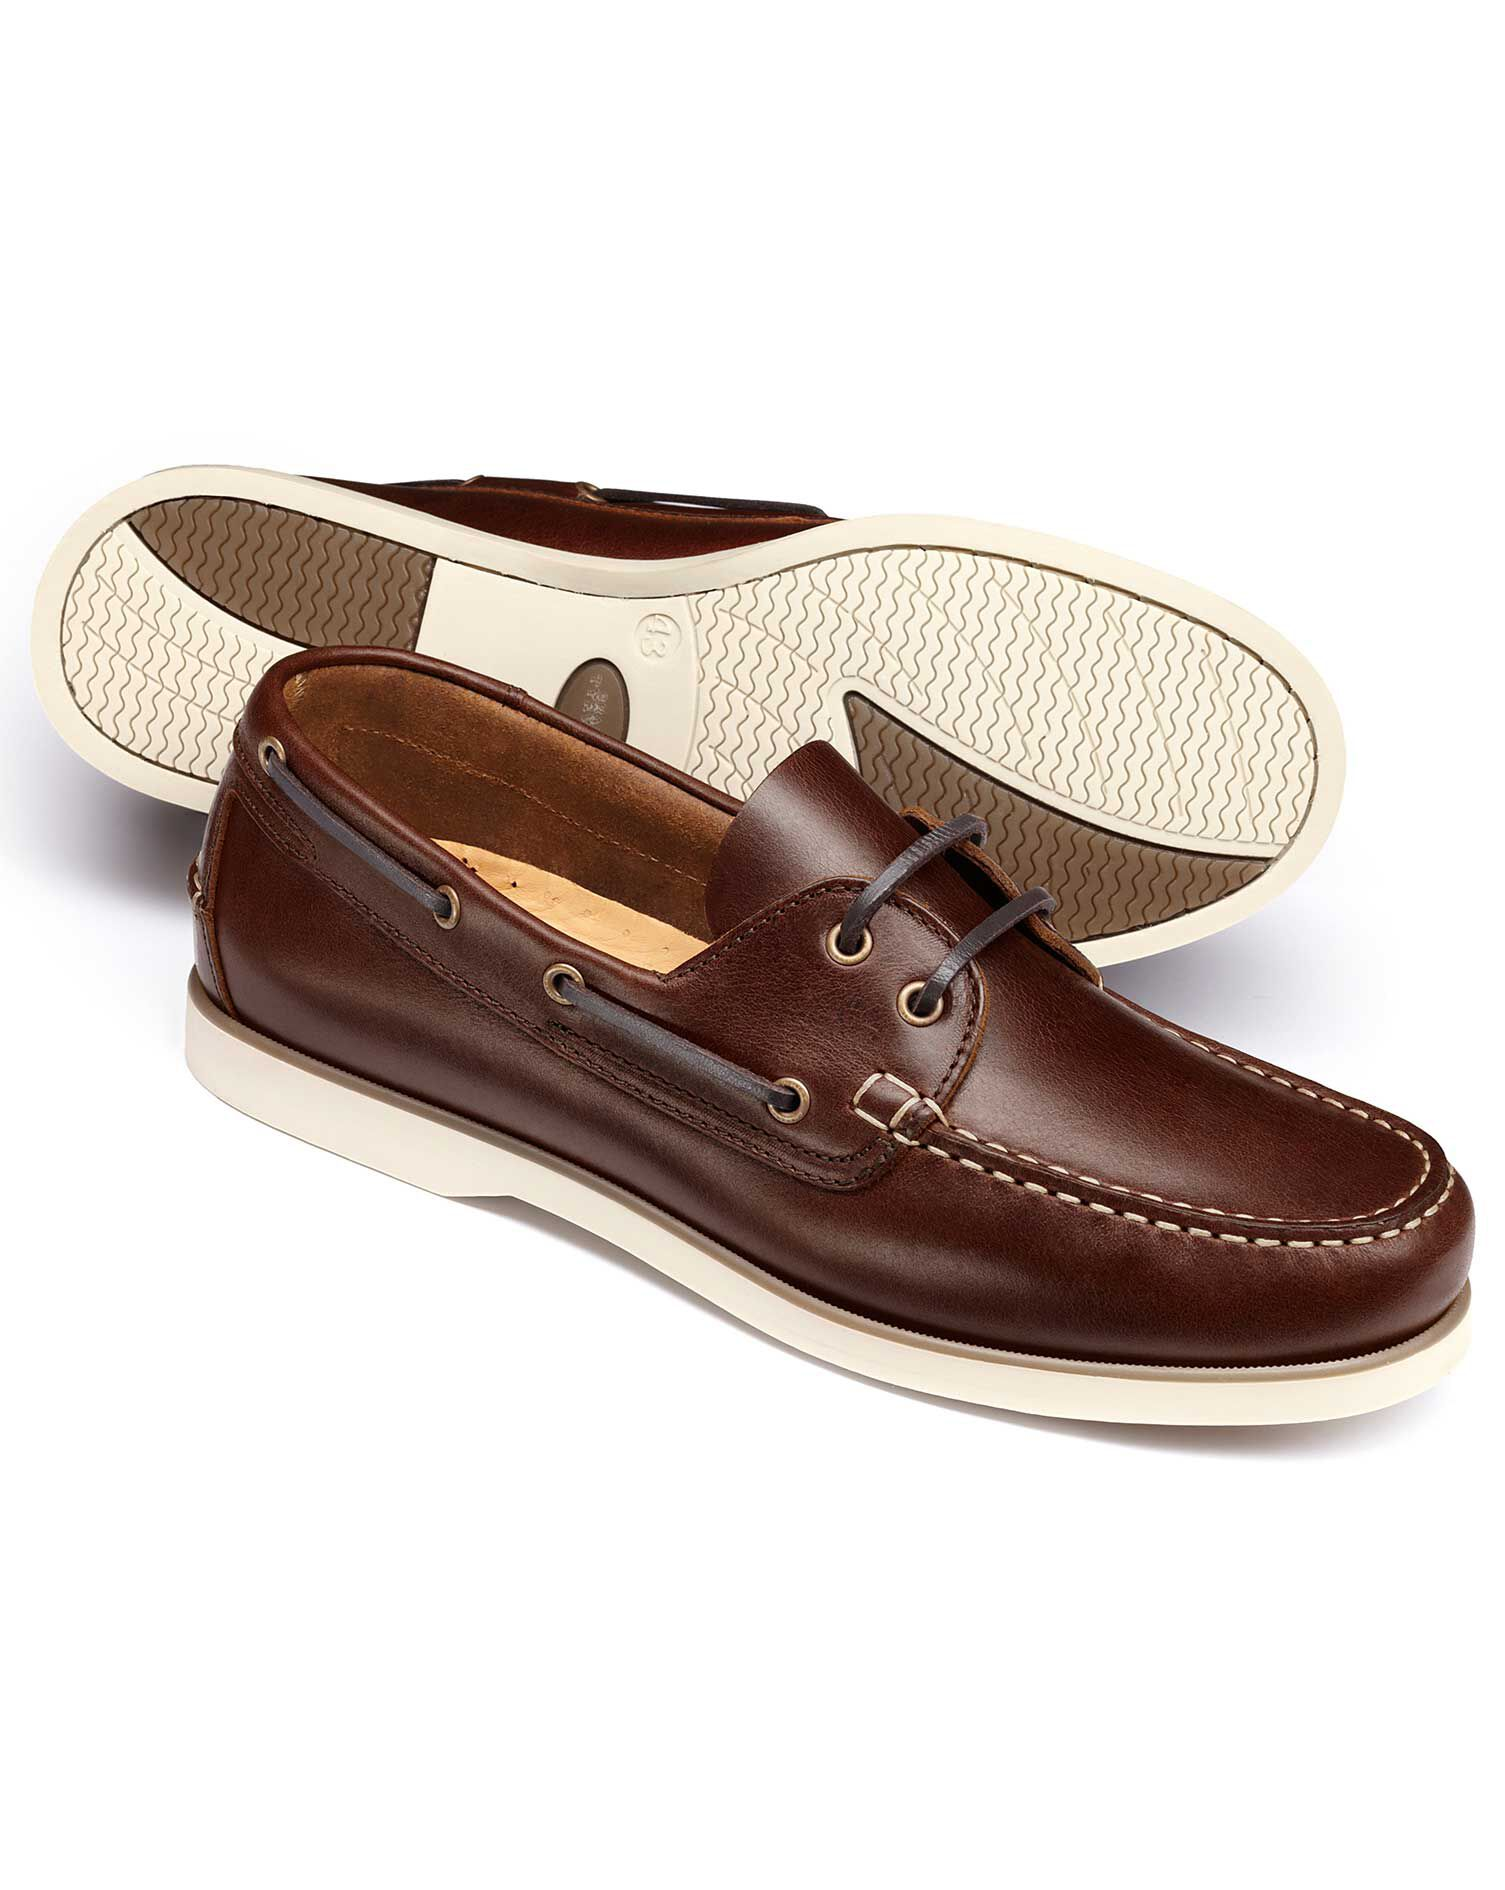 Brown Fowey Boat Shoes Size 12 R by Charles Tyrwhitt